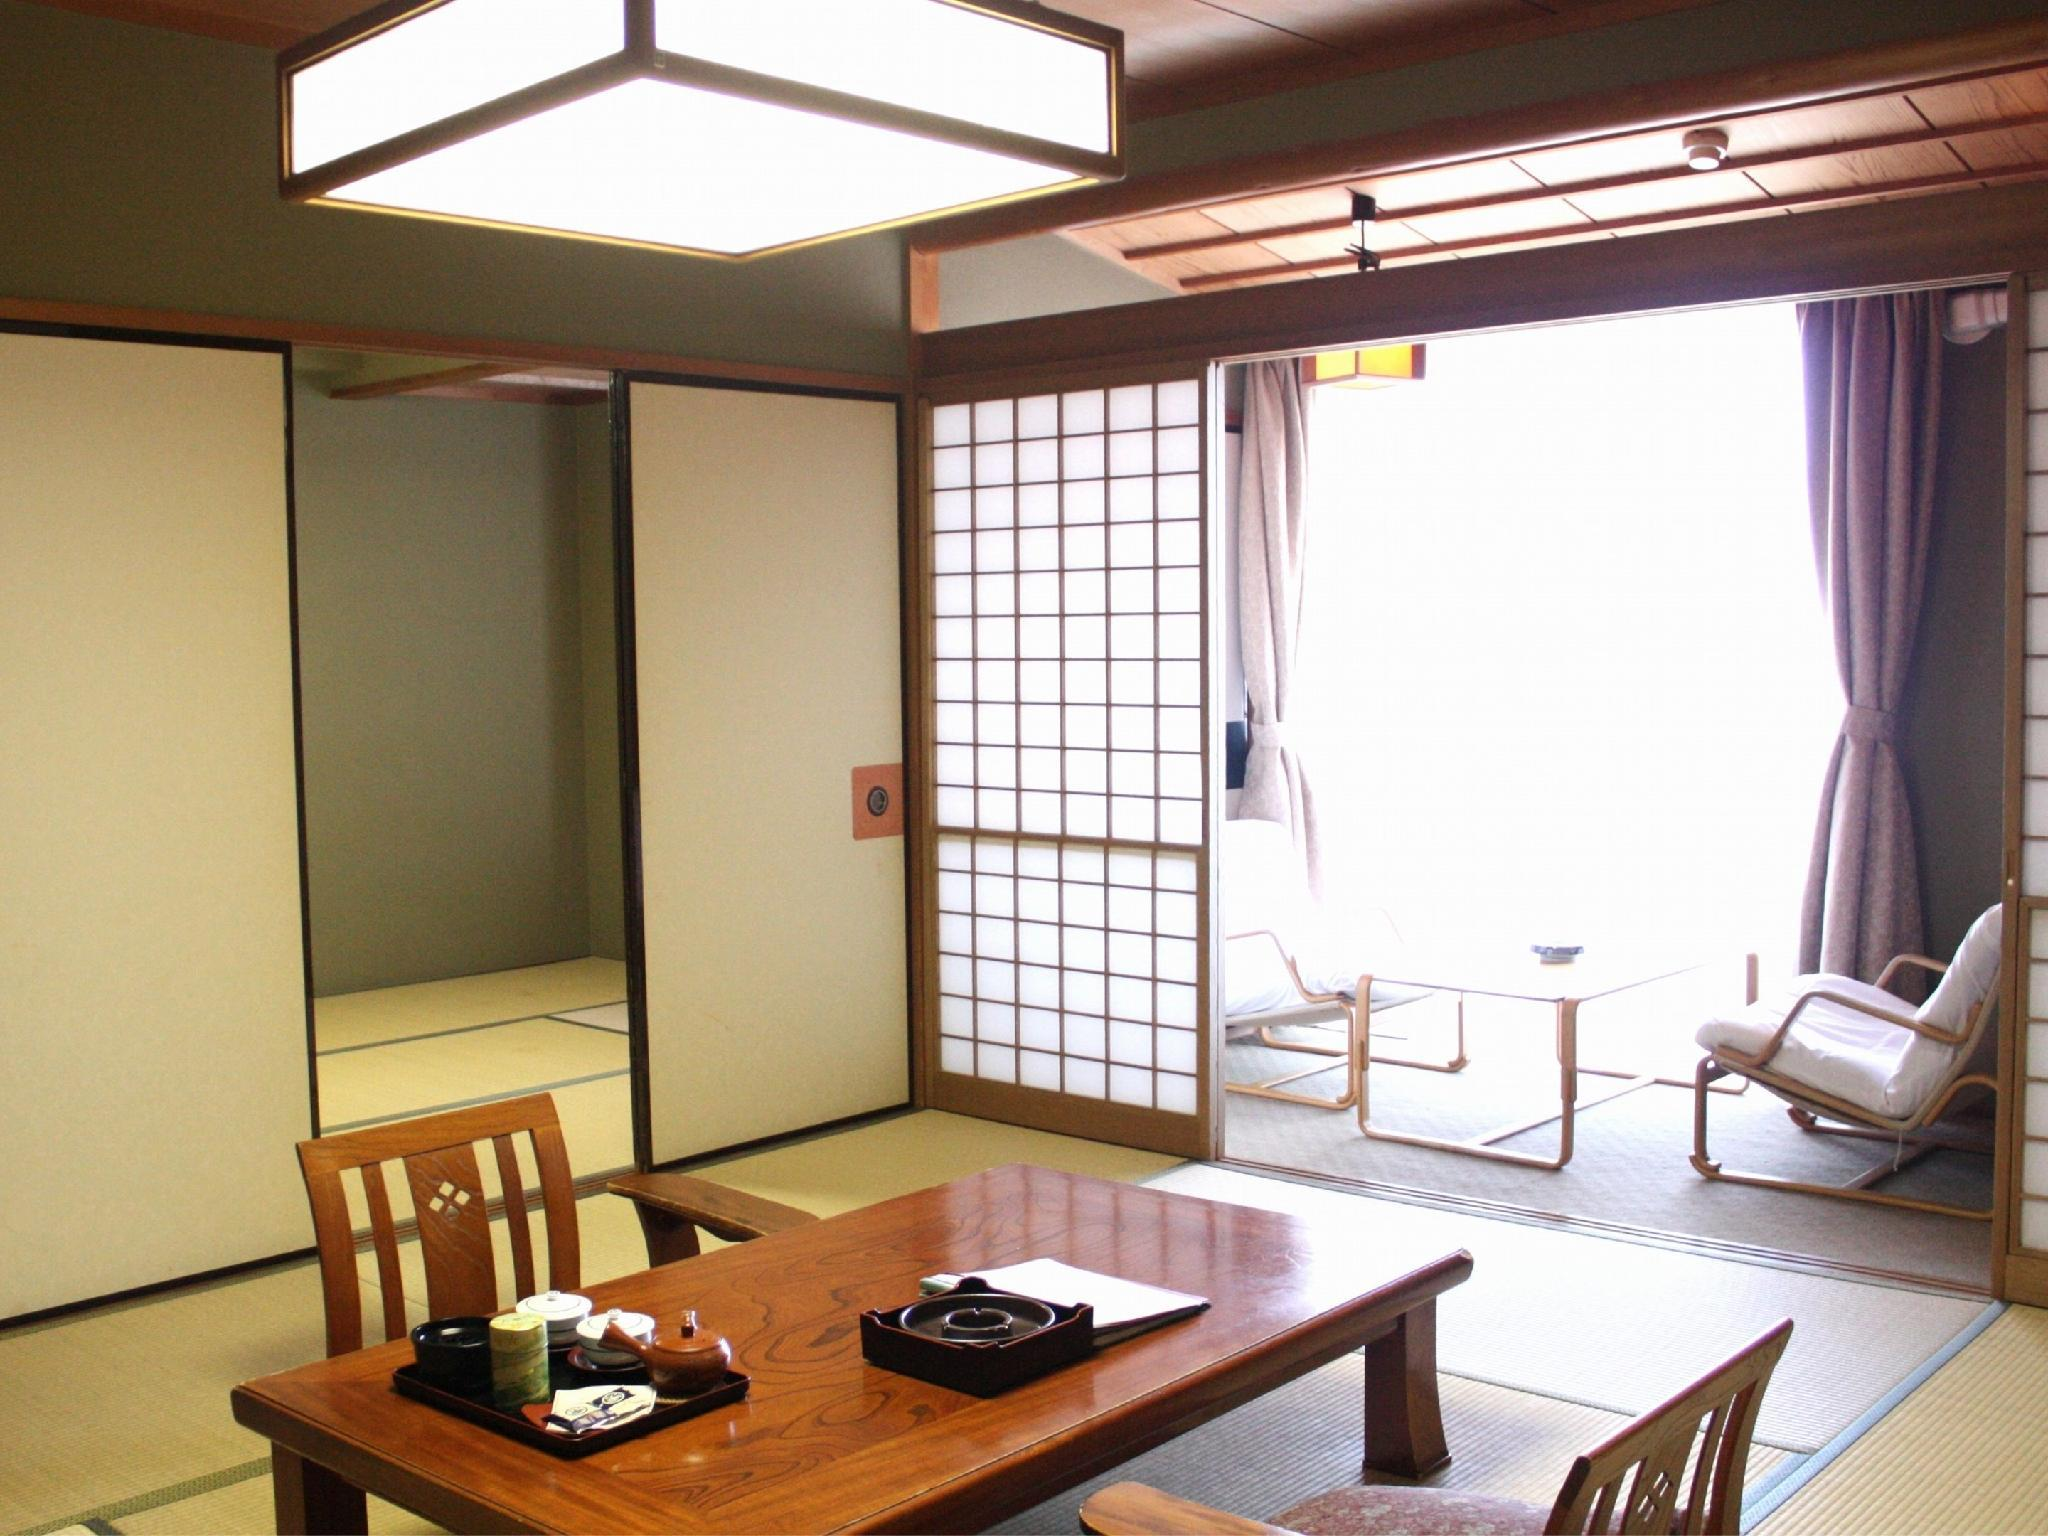 和室|10畳+次の間6畳+踏込0.5畳 (Japanese-style Room with Hiroen Space)